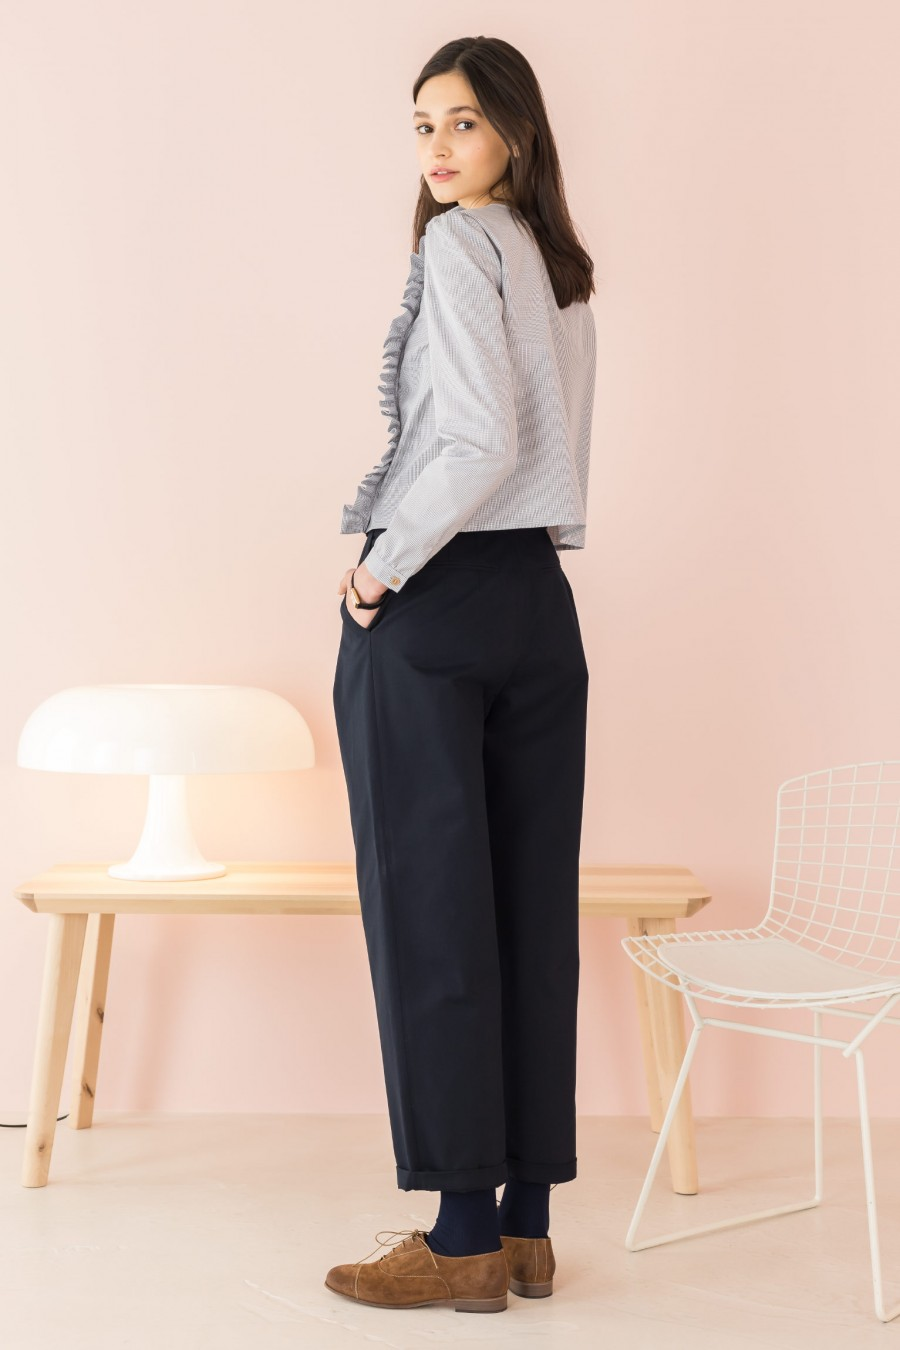 blue long trousers in light fabric